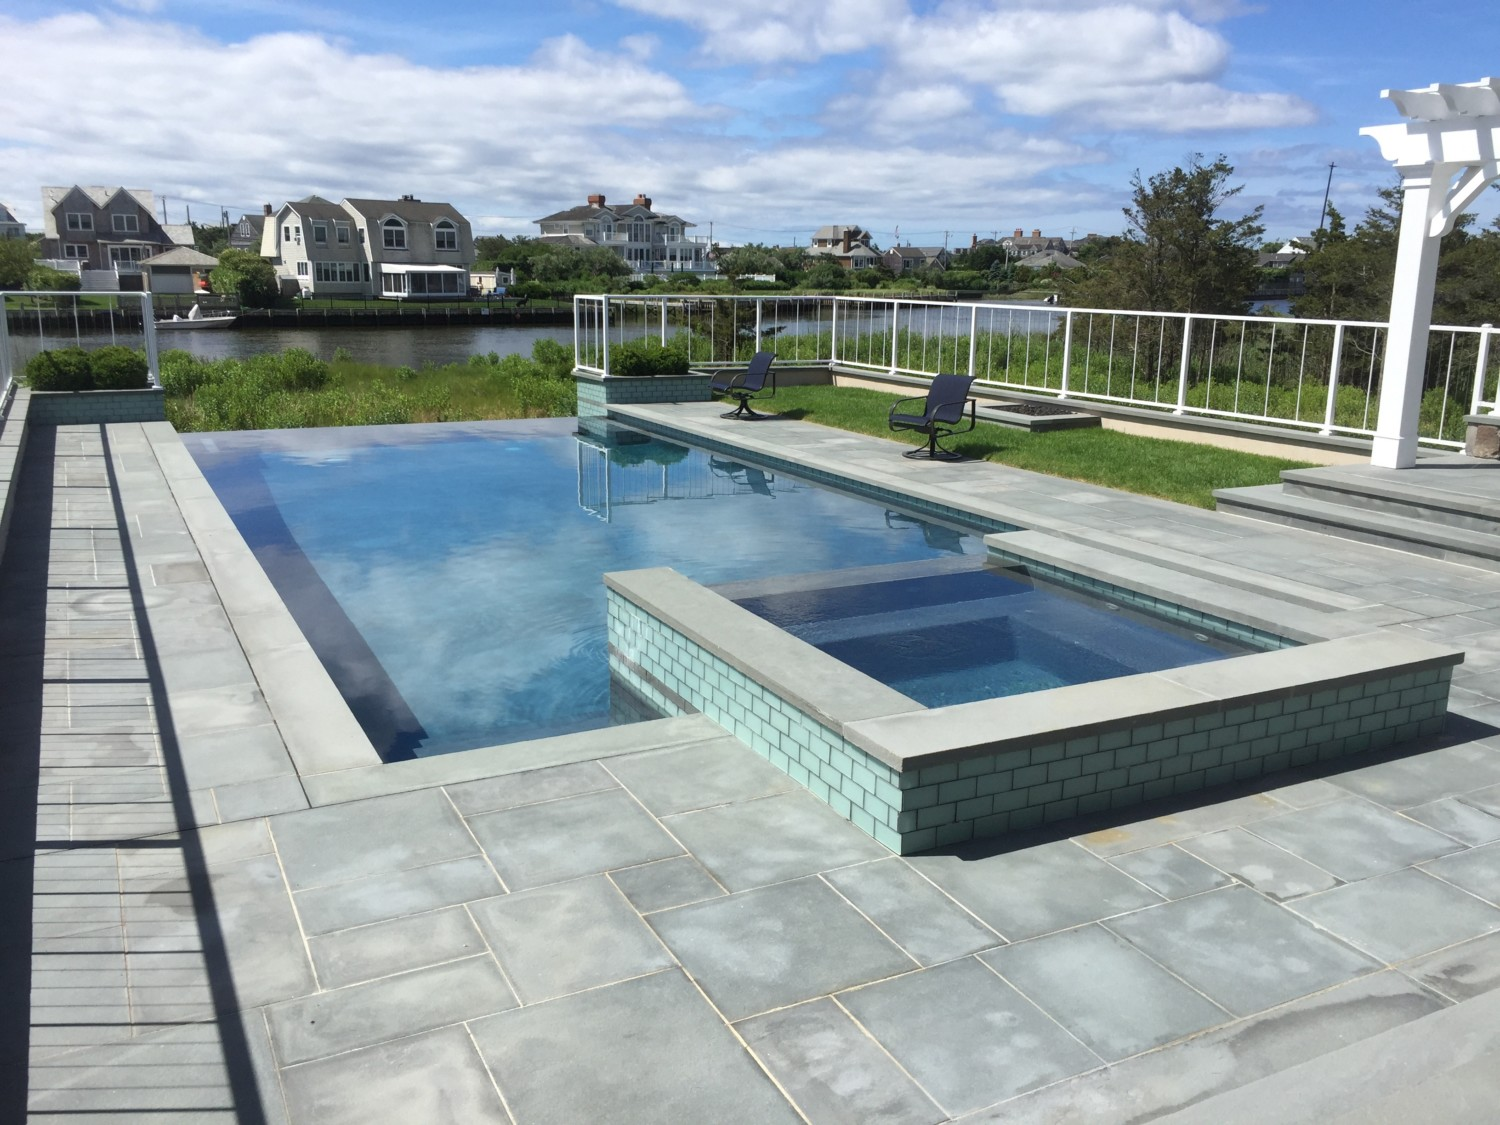 Spillover Spa Amp Negative Edge In East Quogue Patricks